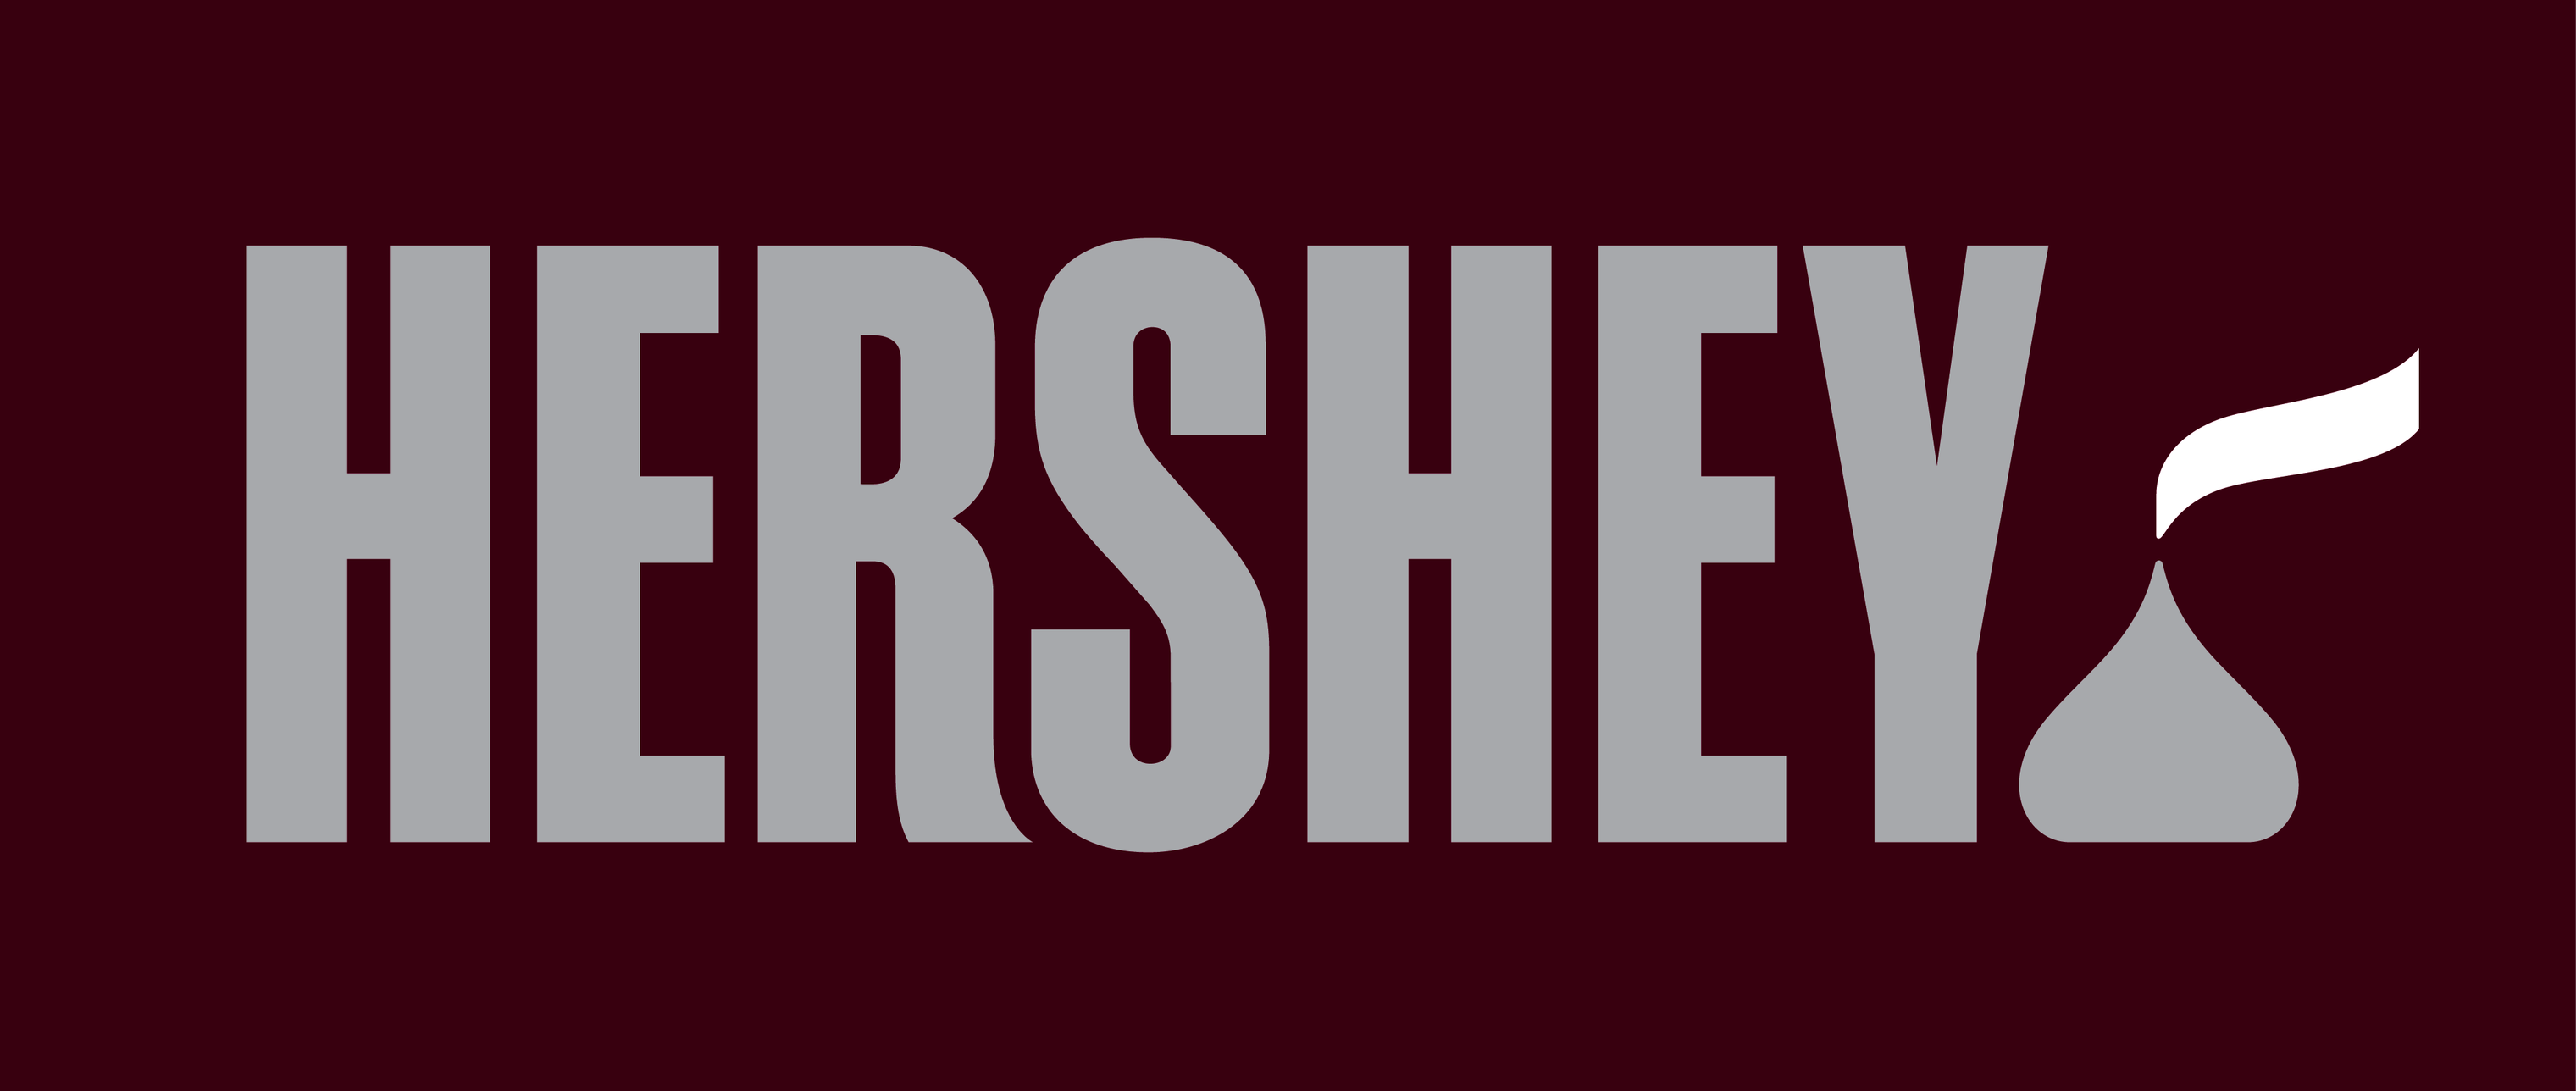 Hershey Just Gave Its Investors A Sweet Kiss The Motley Fool